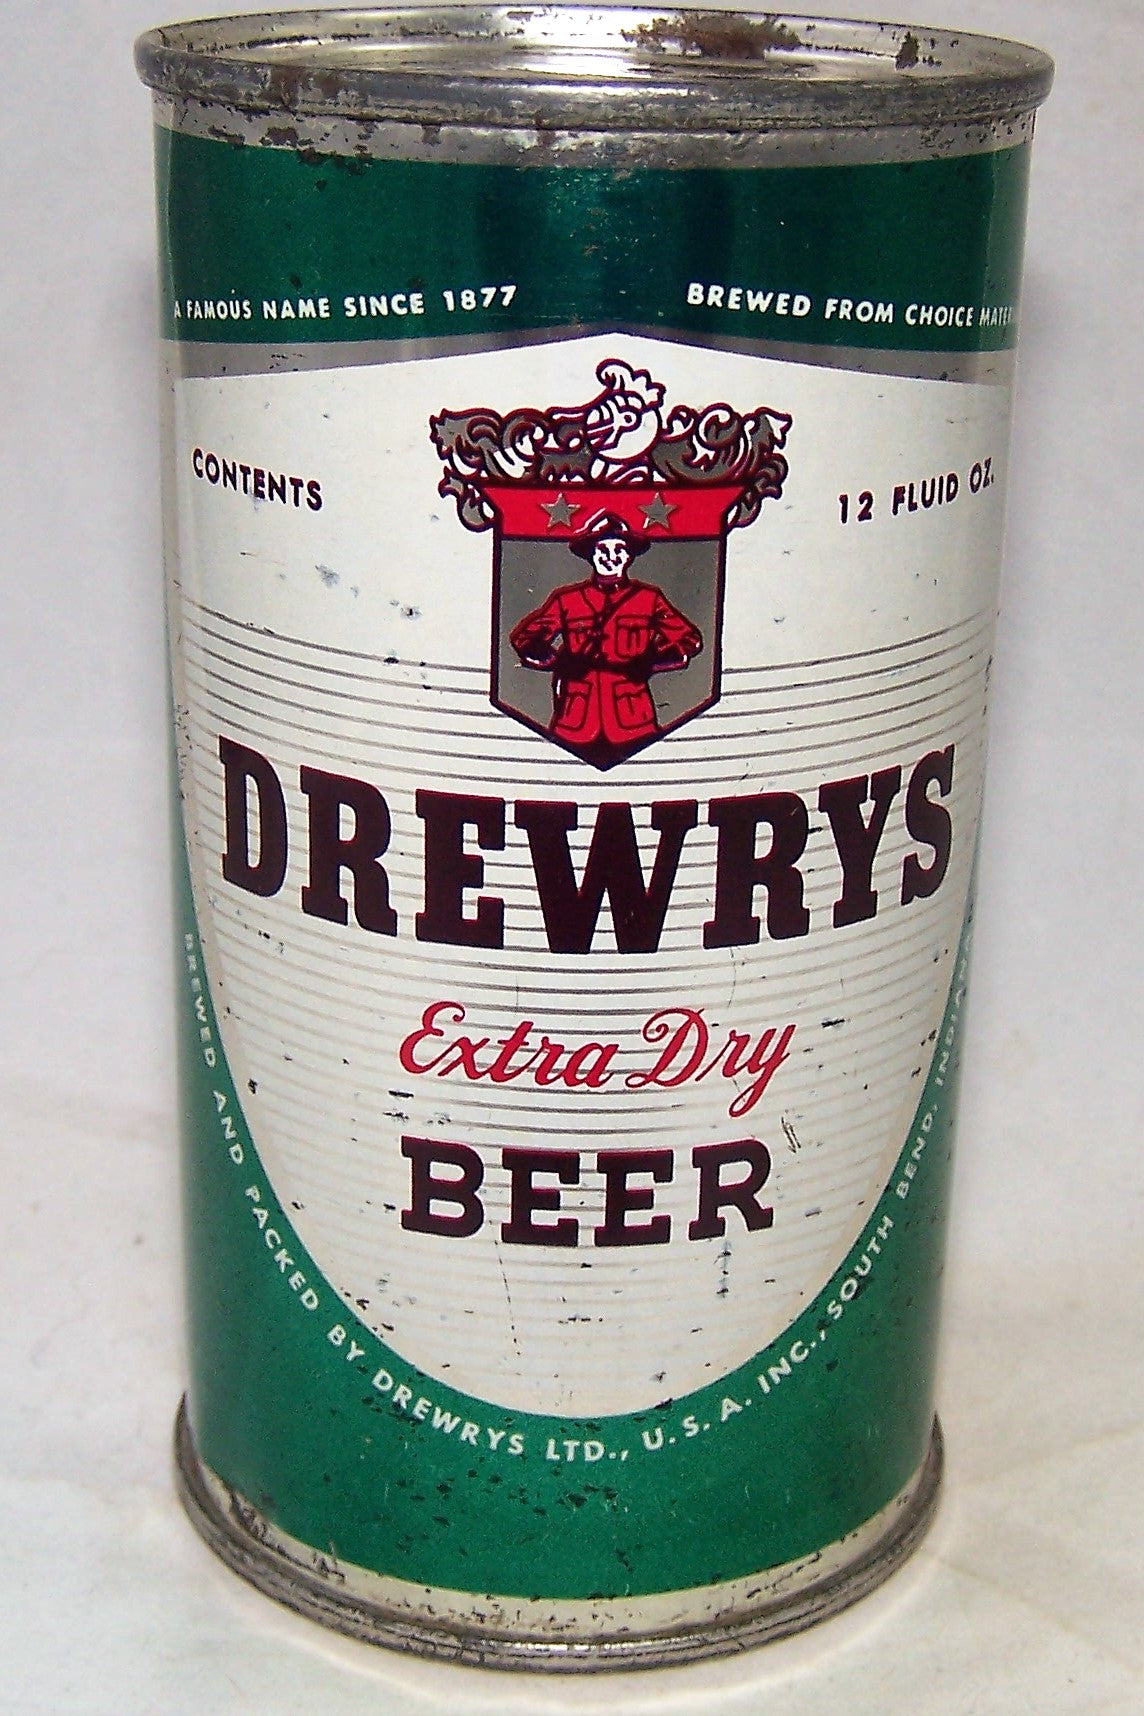 Drewrys Extra Dry (Your Character) USBC 56-35, Grade 1- Sold on 01/22/20